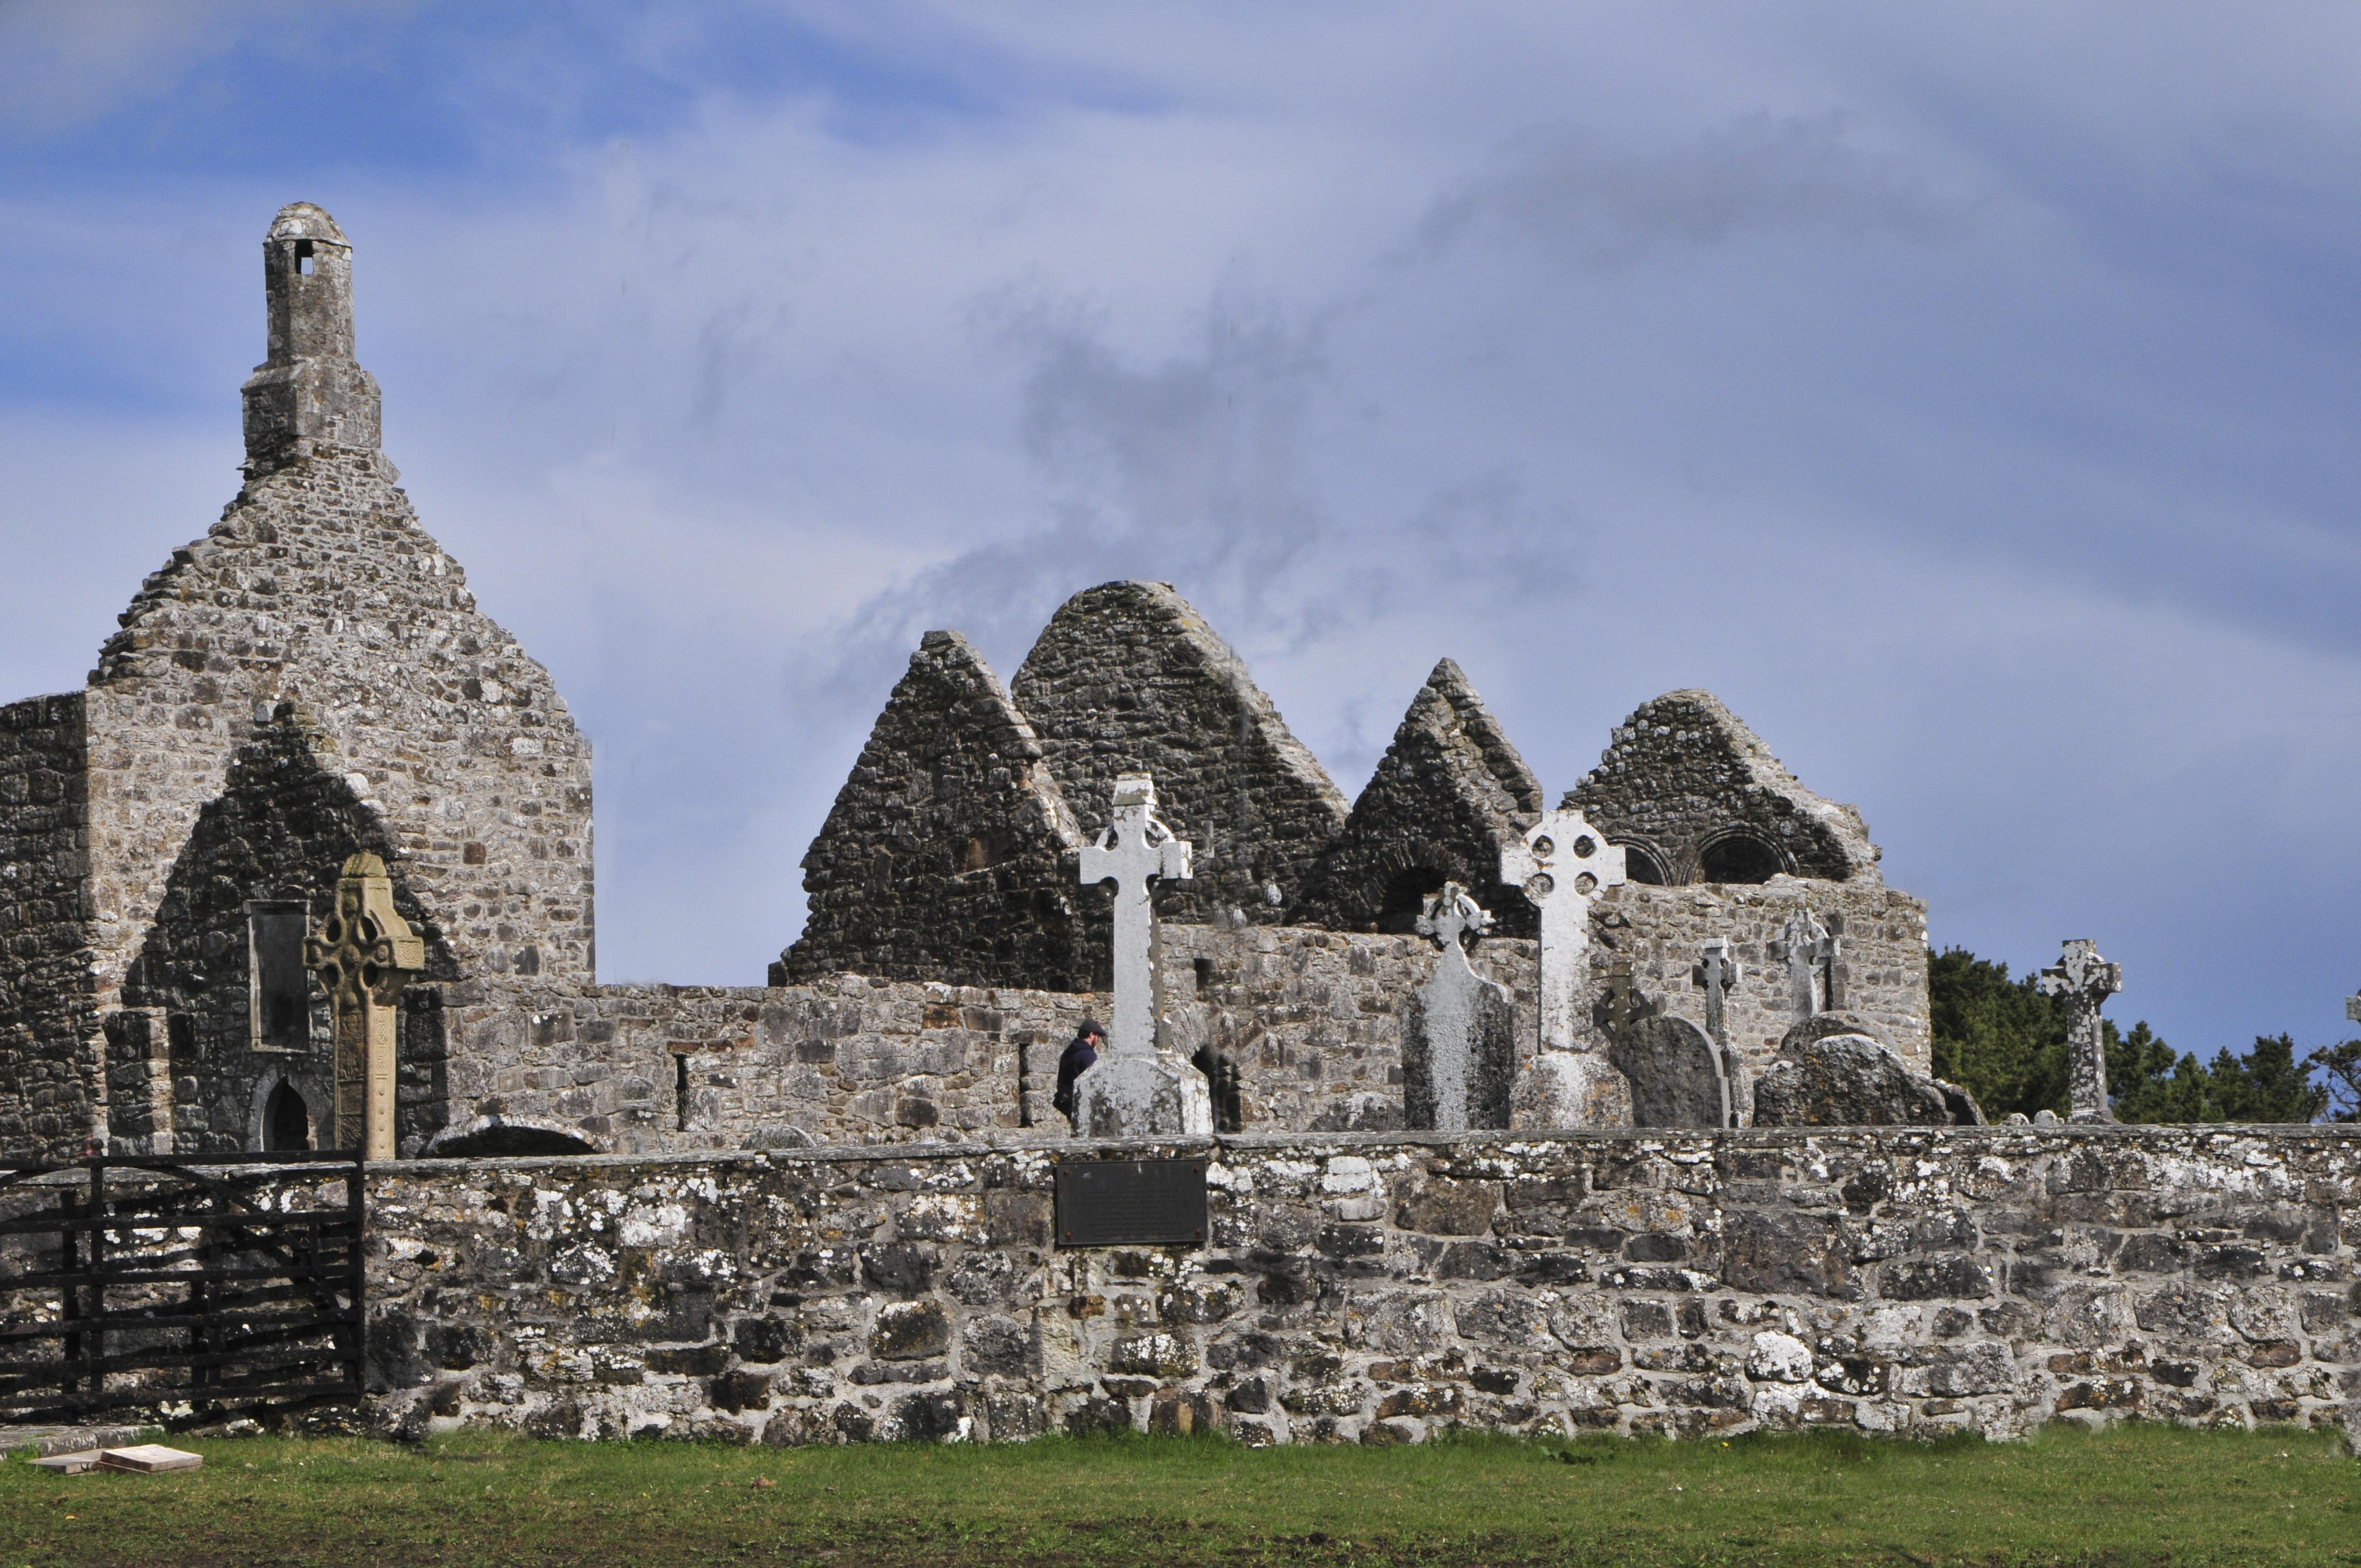 Cross of the Scriptures, Clonmacnoise Ireland